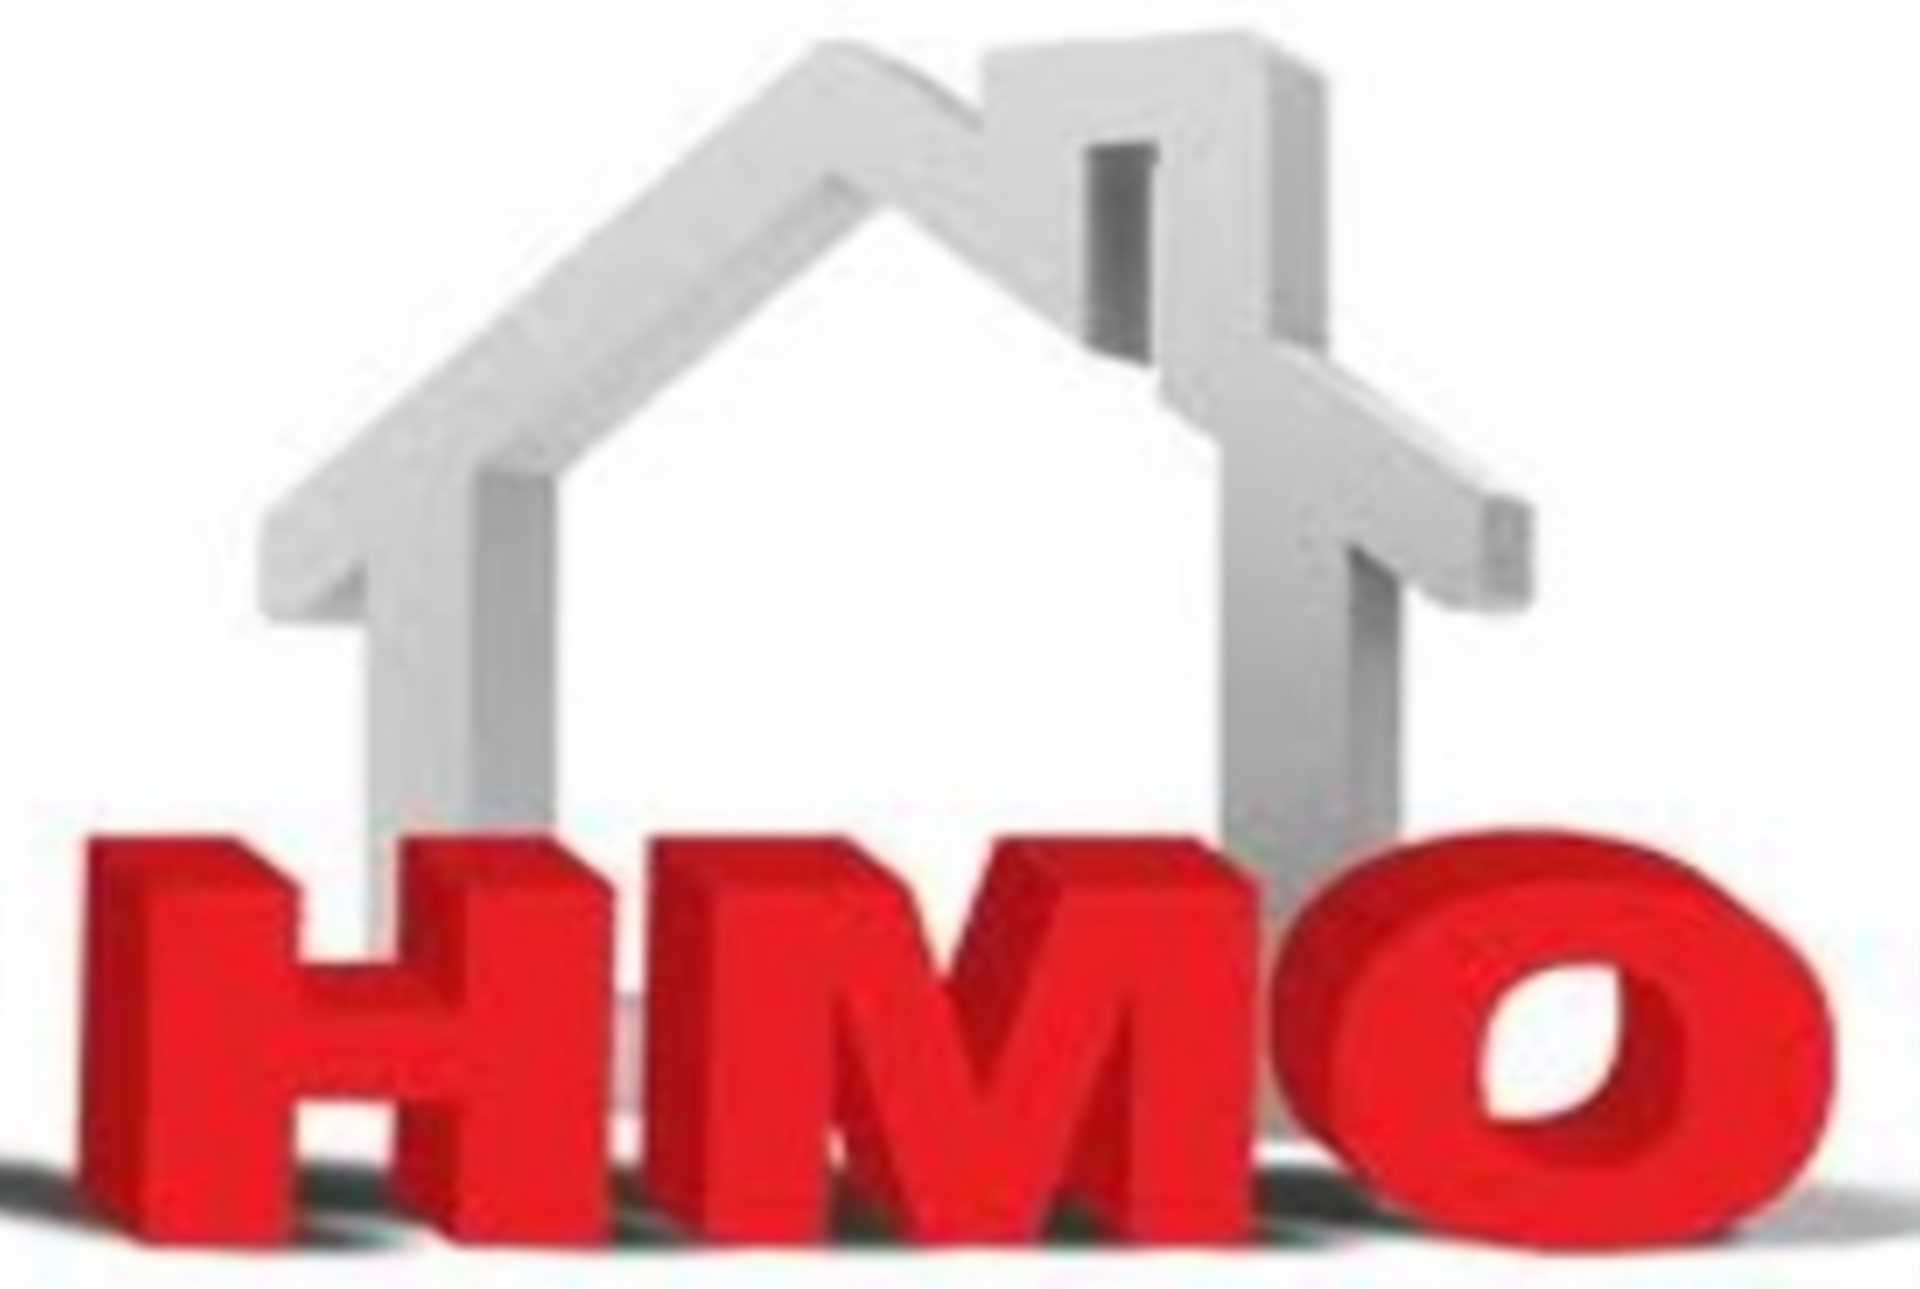 Government publishes key licensing/HMO changes